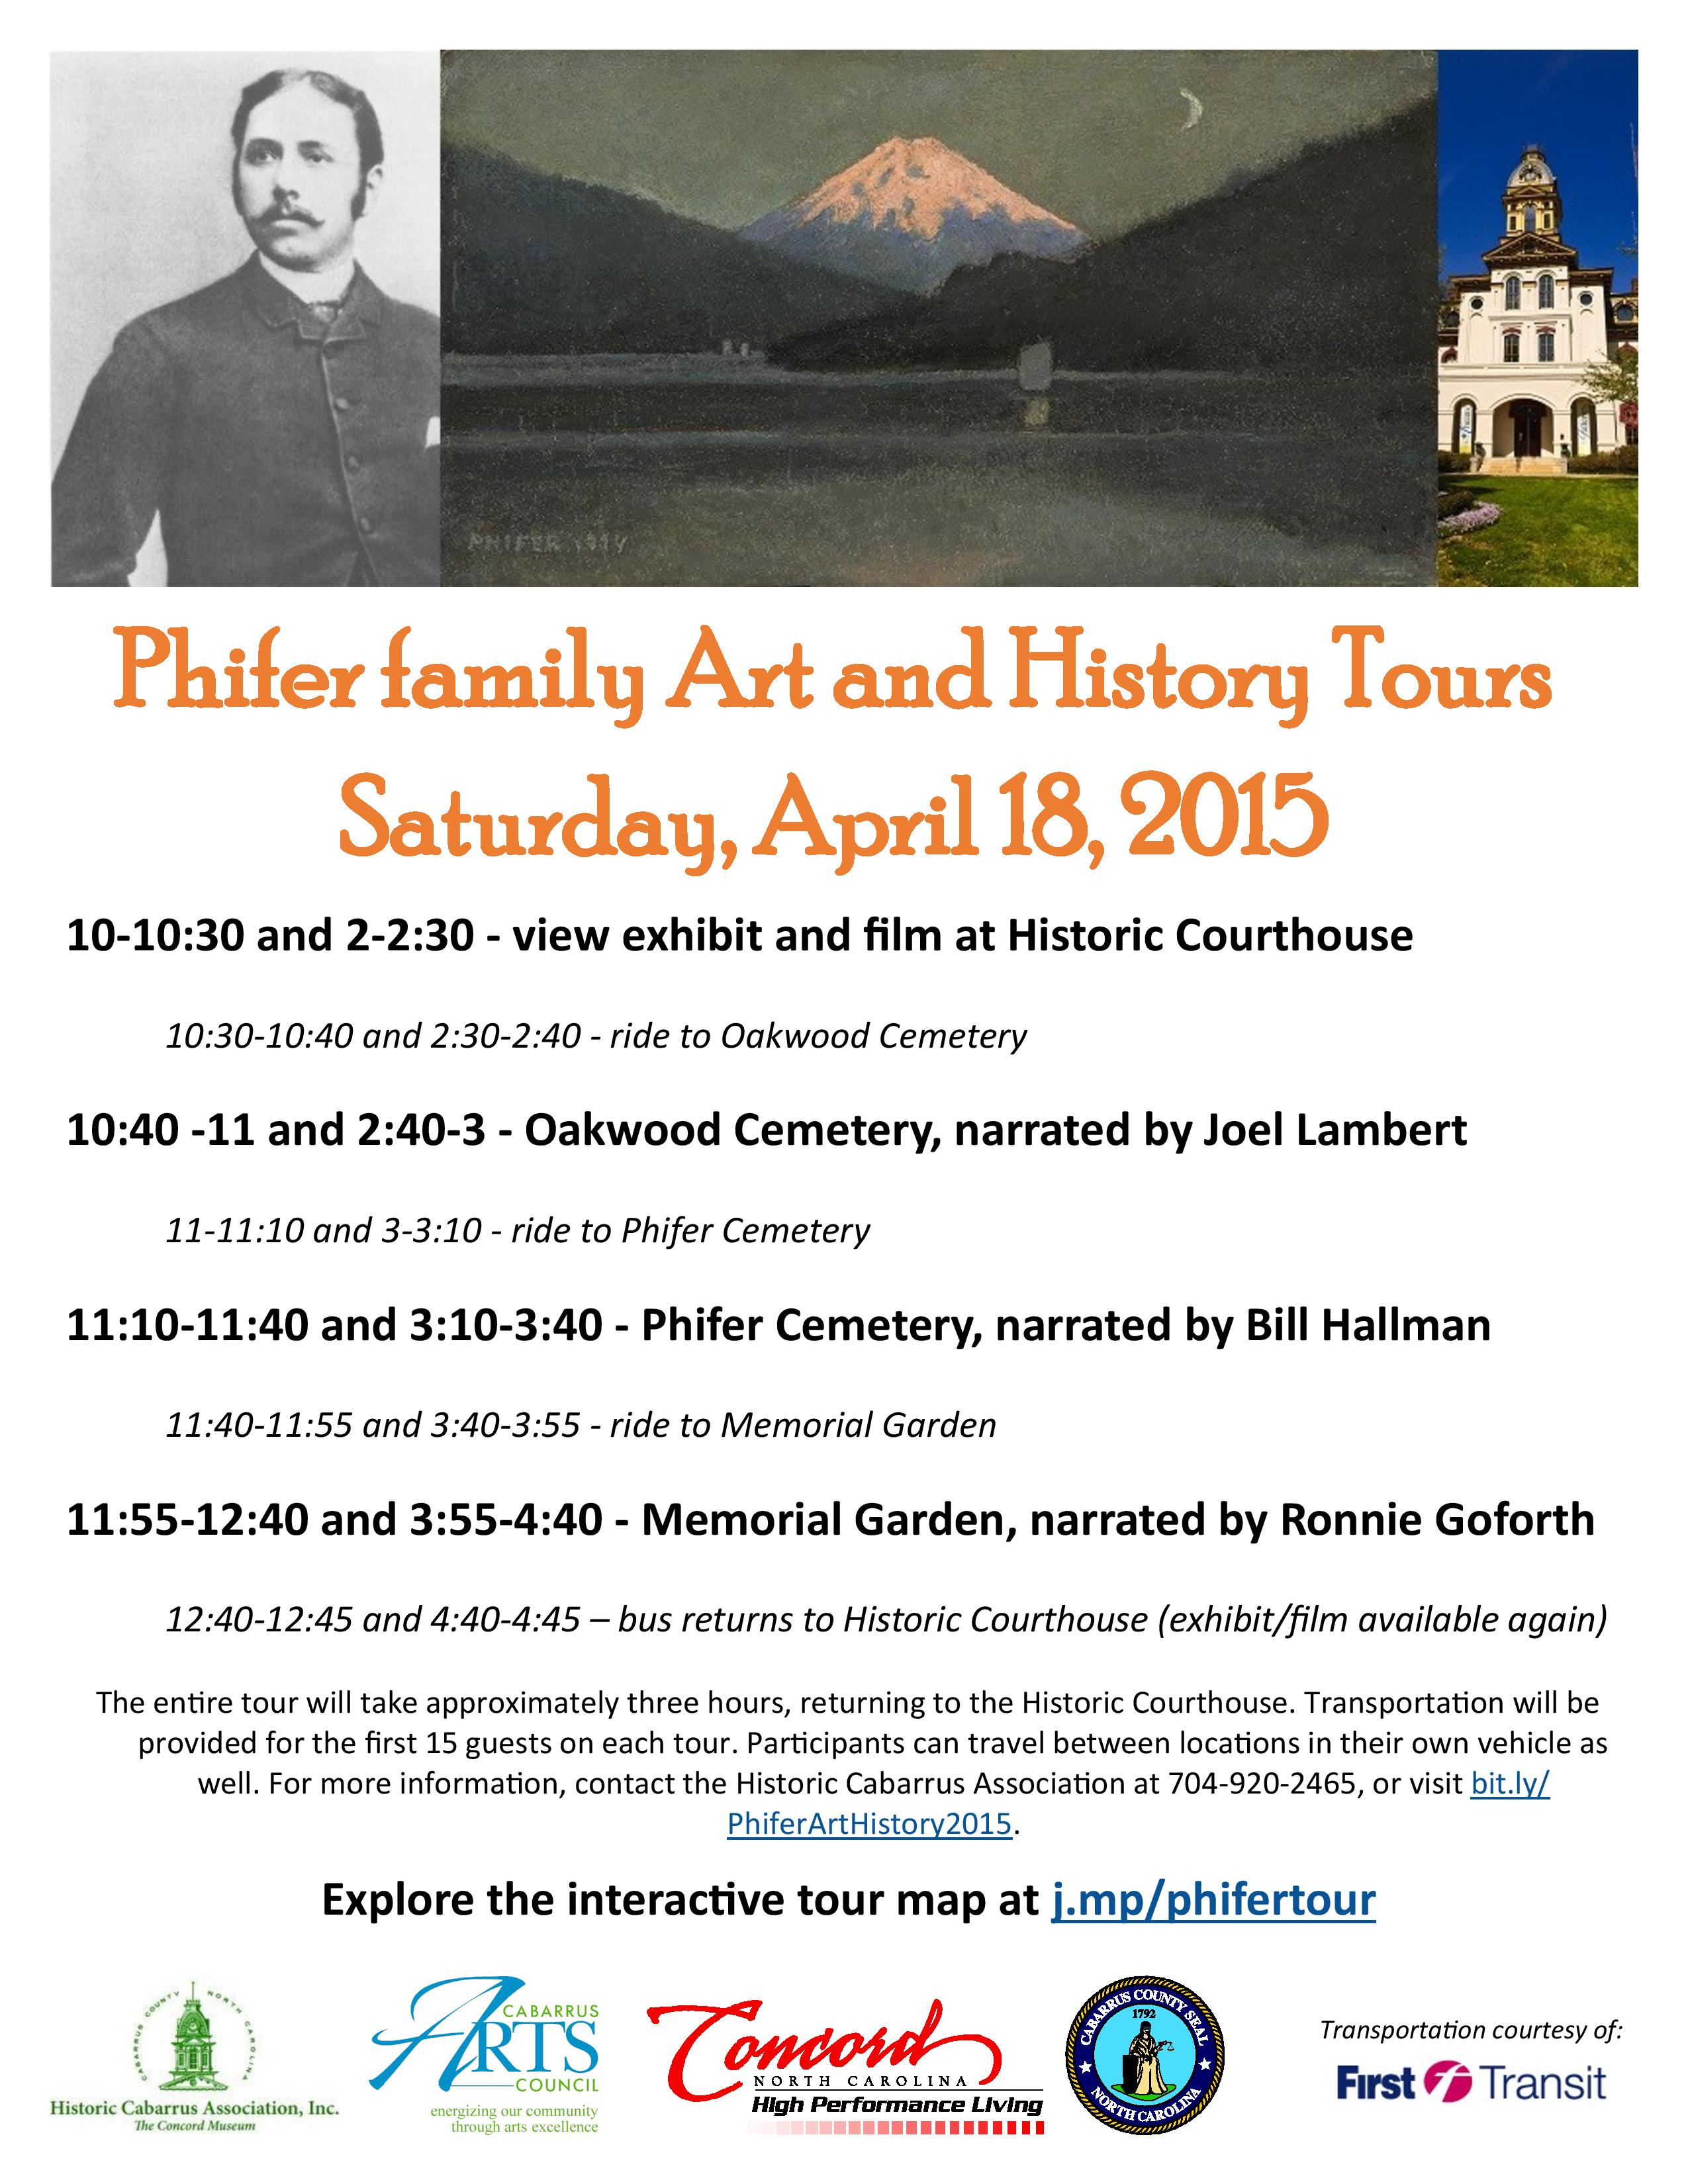 phifer tour itinerary 2015-04-15 new-page-001